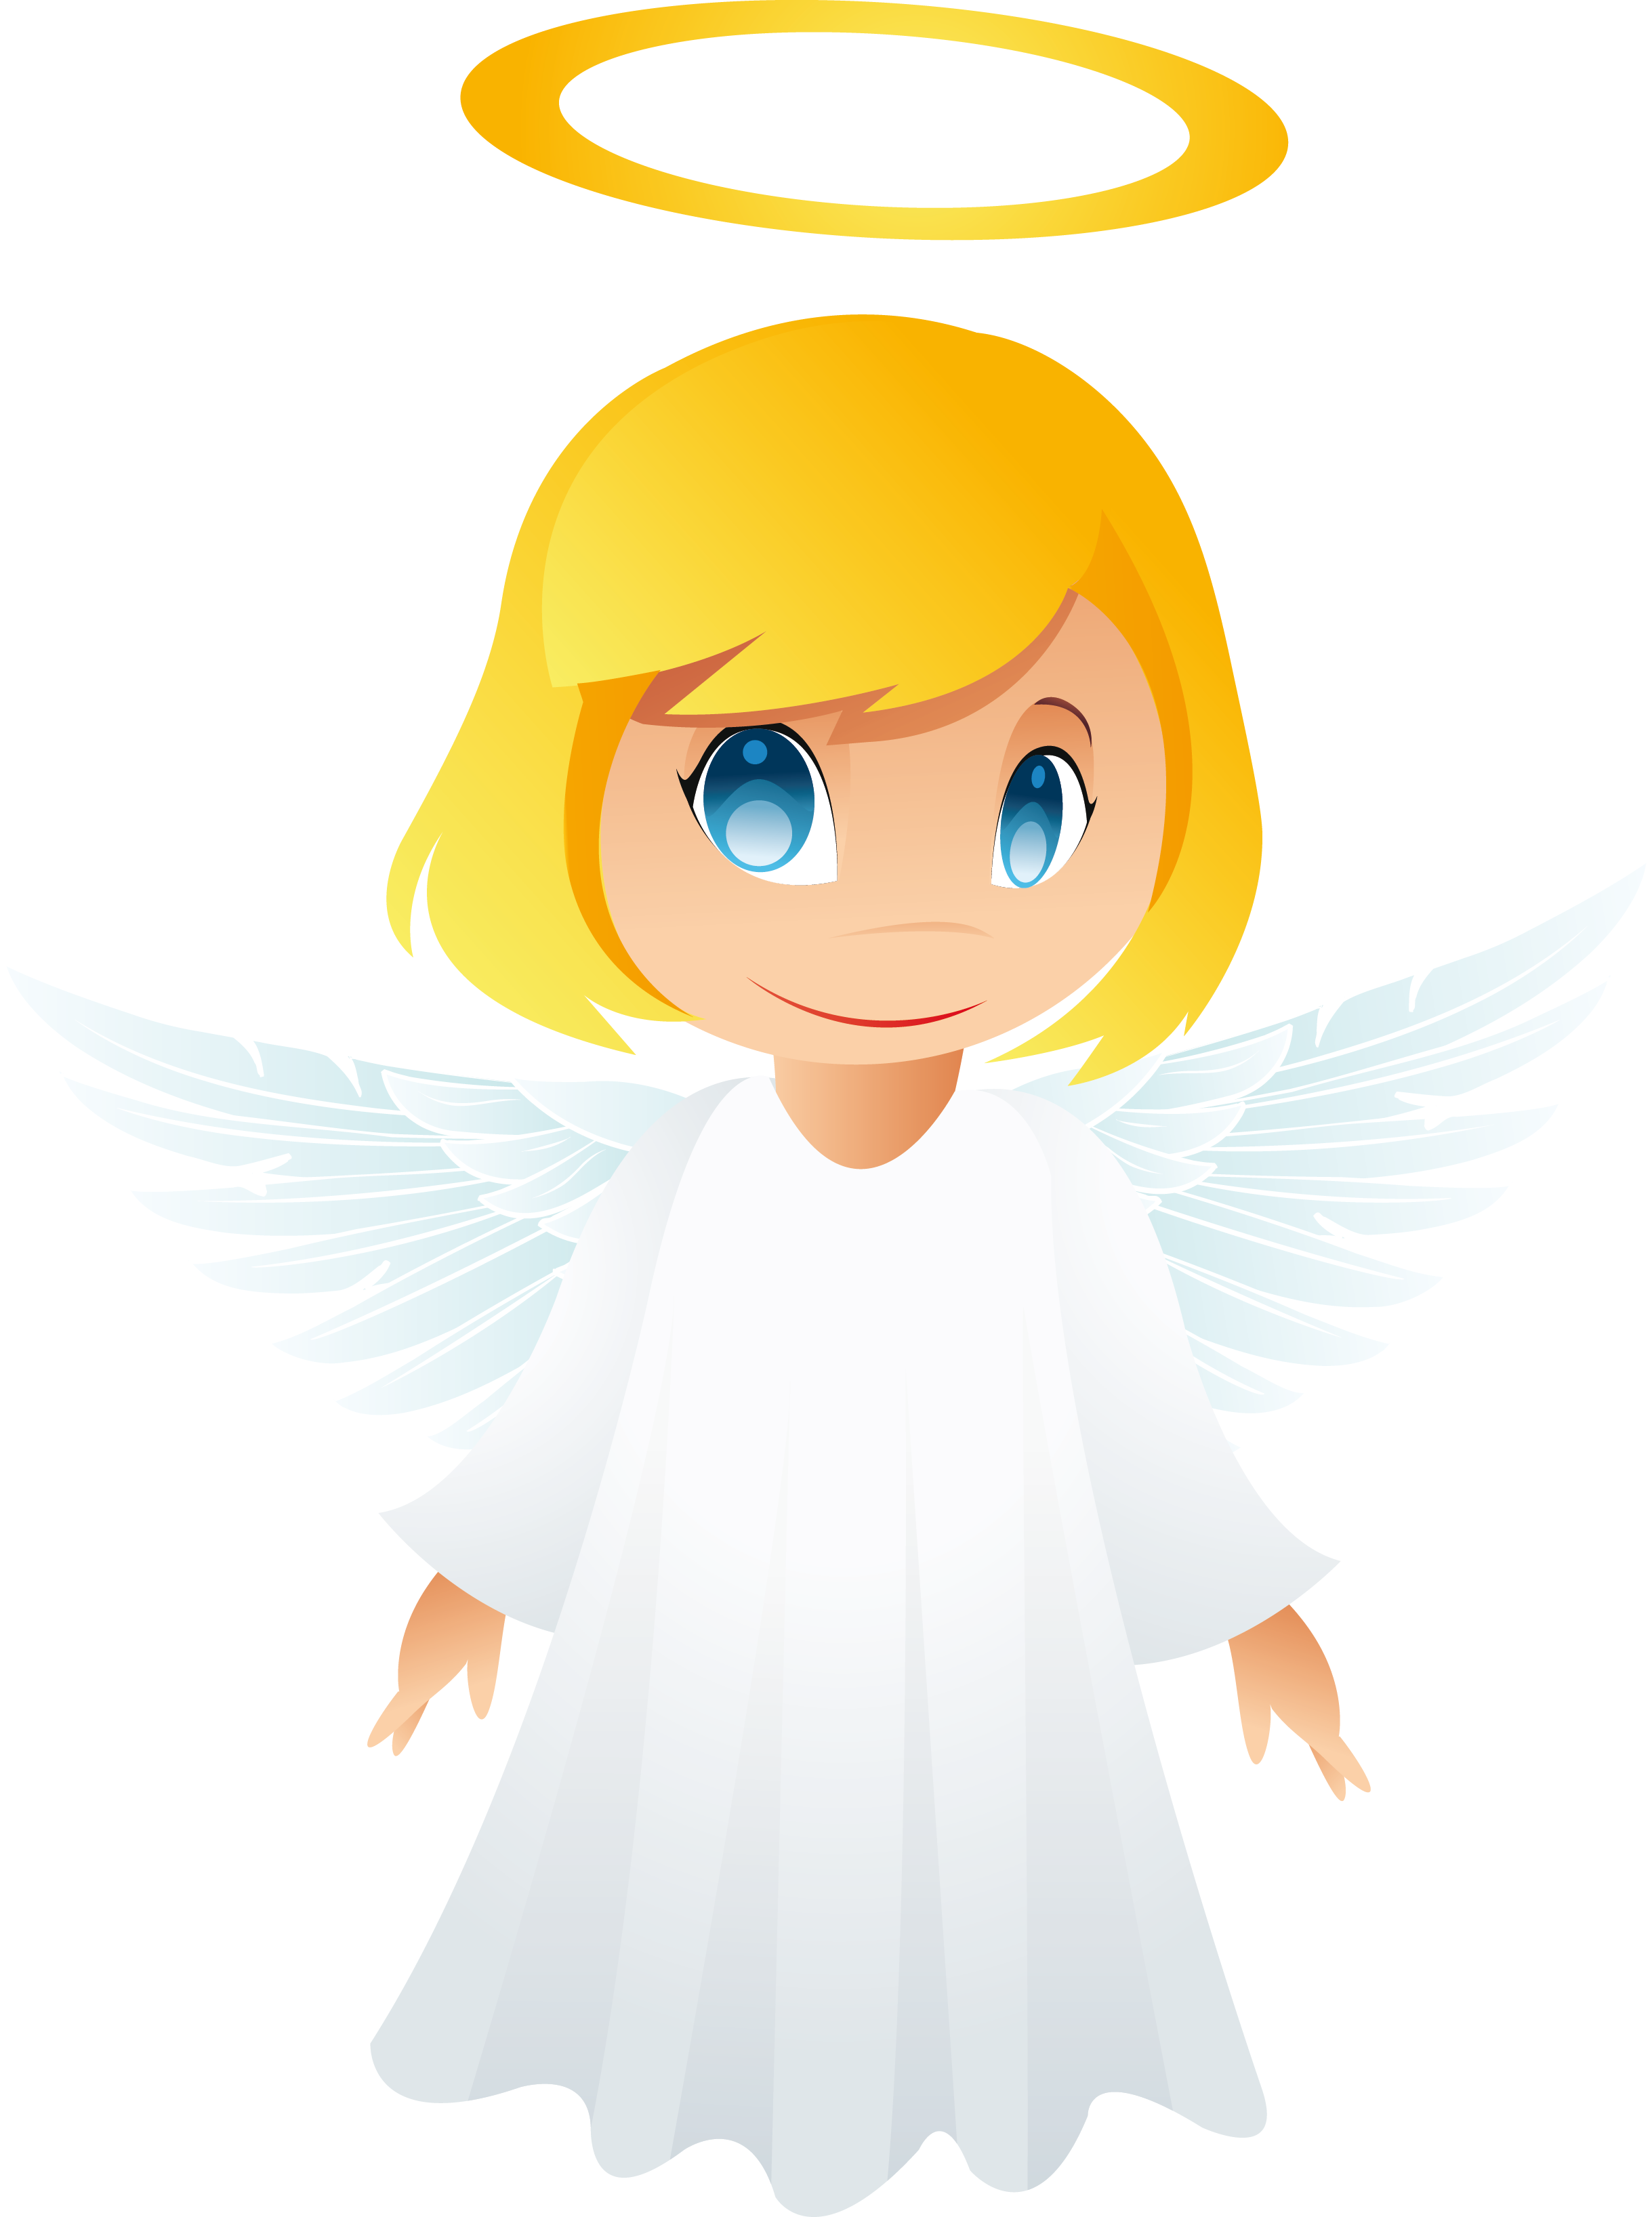 angel clipart free graphics of cherubs and angels the cliparts rh pinterest com clip art of angels with wings clip art of angels wings